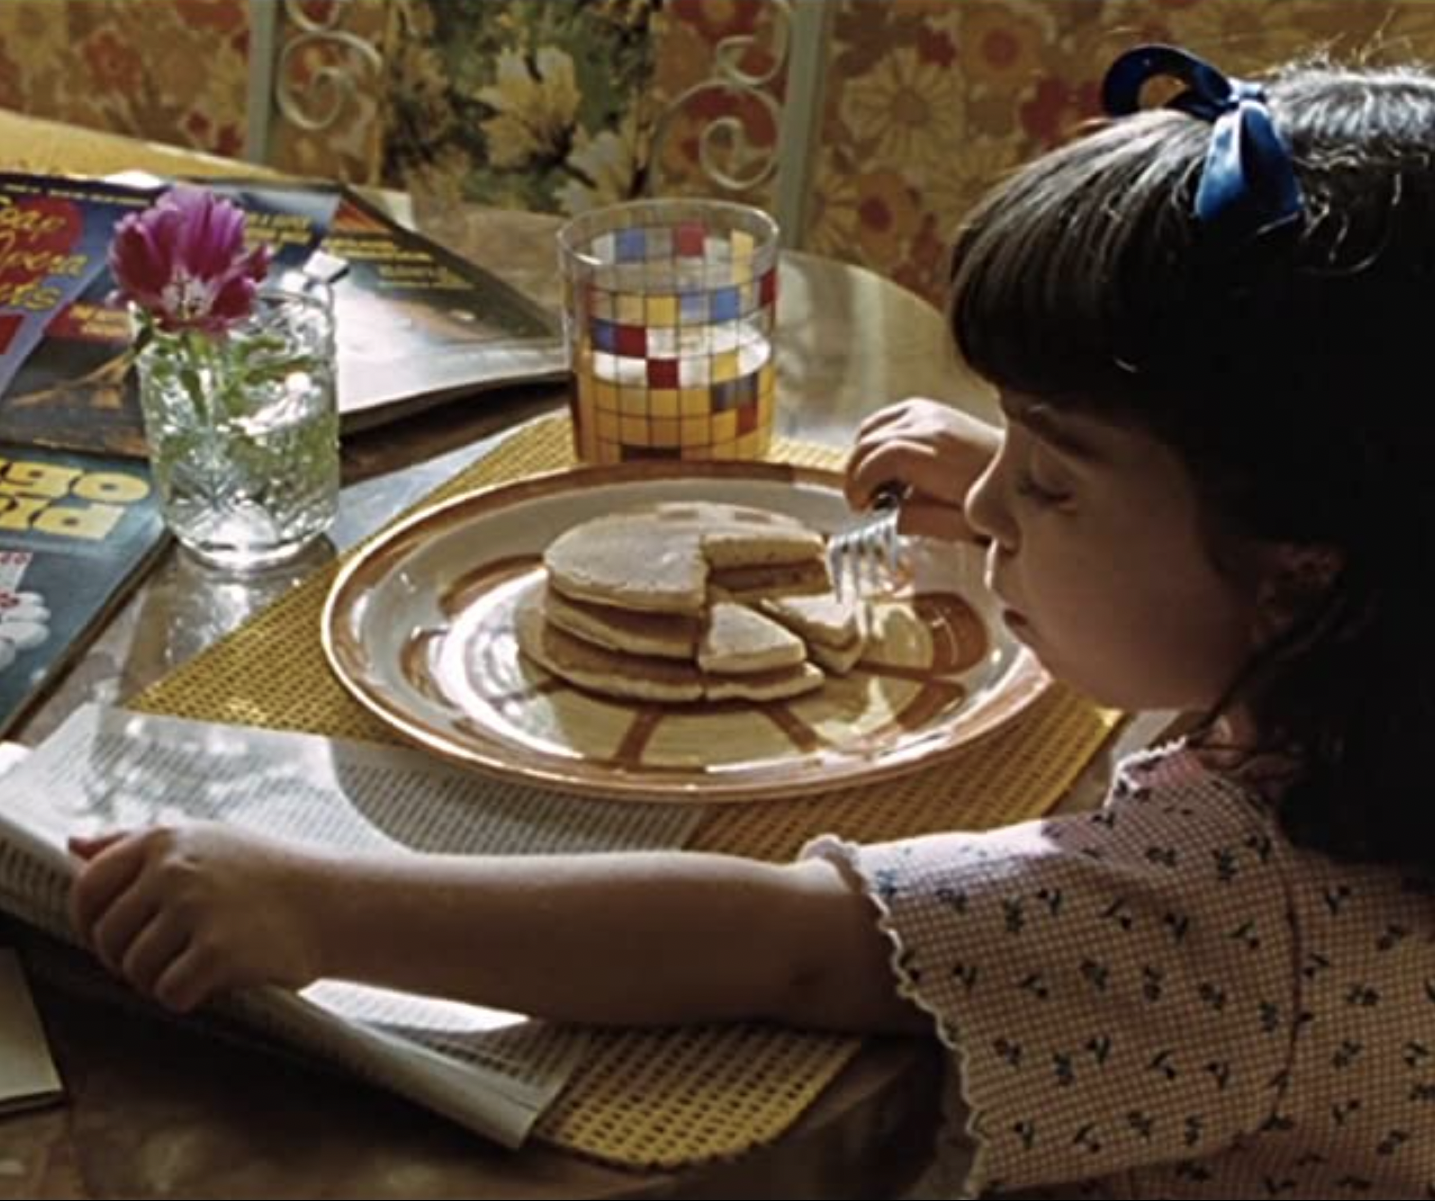 Screenshot 2021 05 17 at 13.33.26 e1621254867686 20 Genius Facts You Never Knew About Matilda